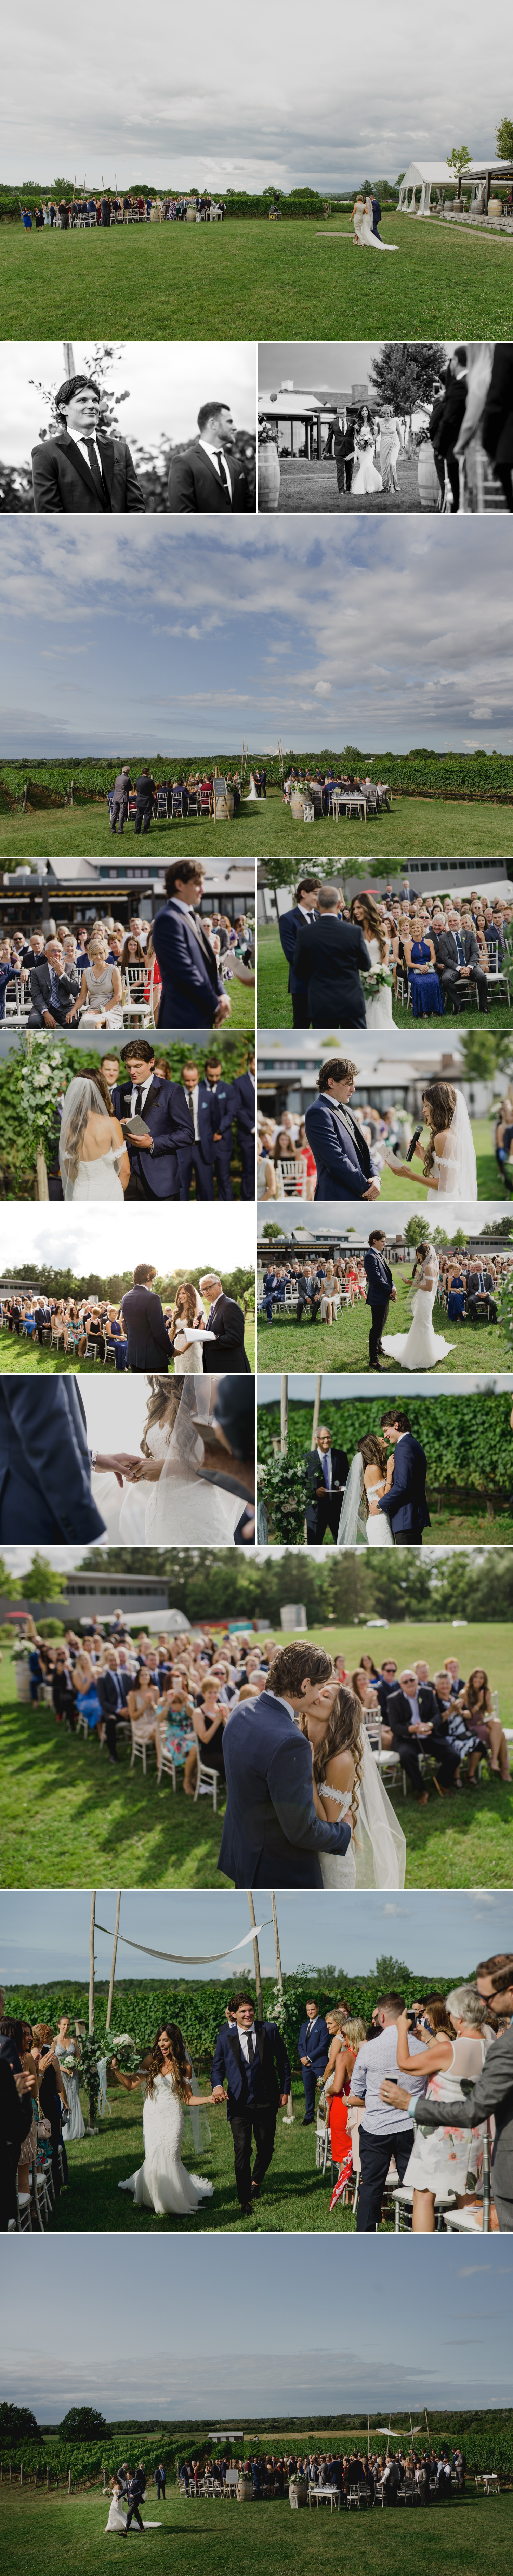 photos of candid moments during a wedding ceremony at the ravine vineyard in niagara on the lake ontario